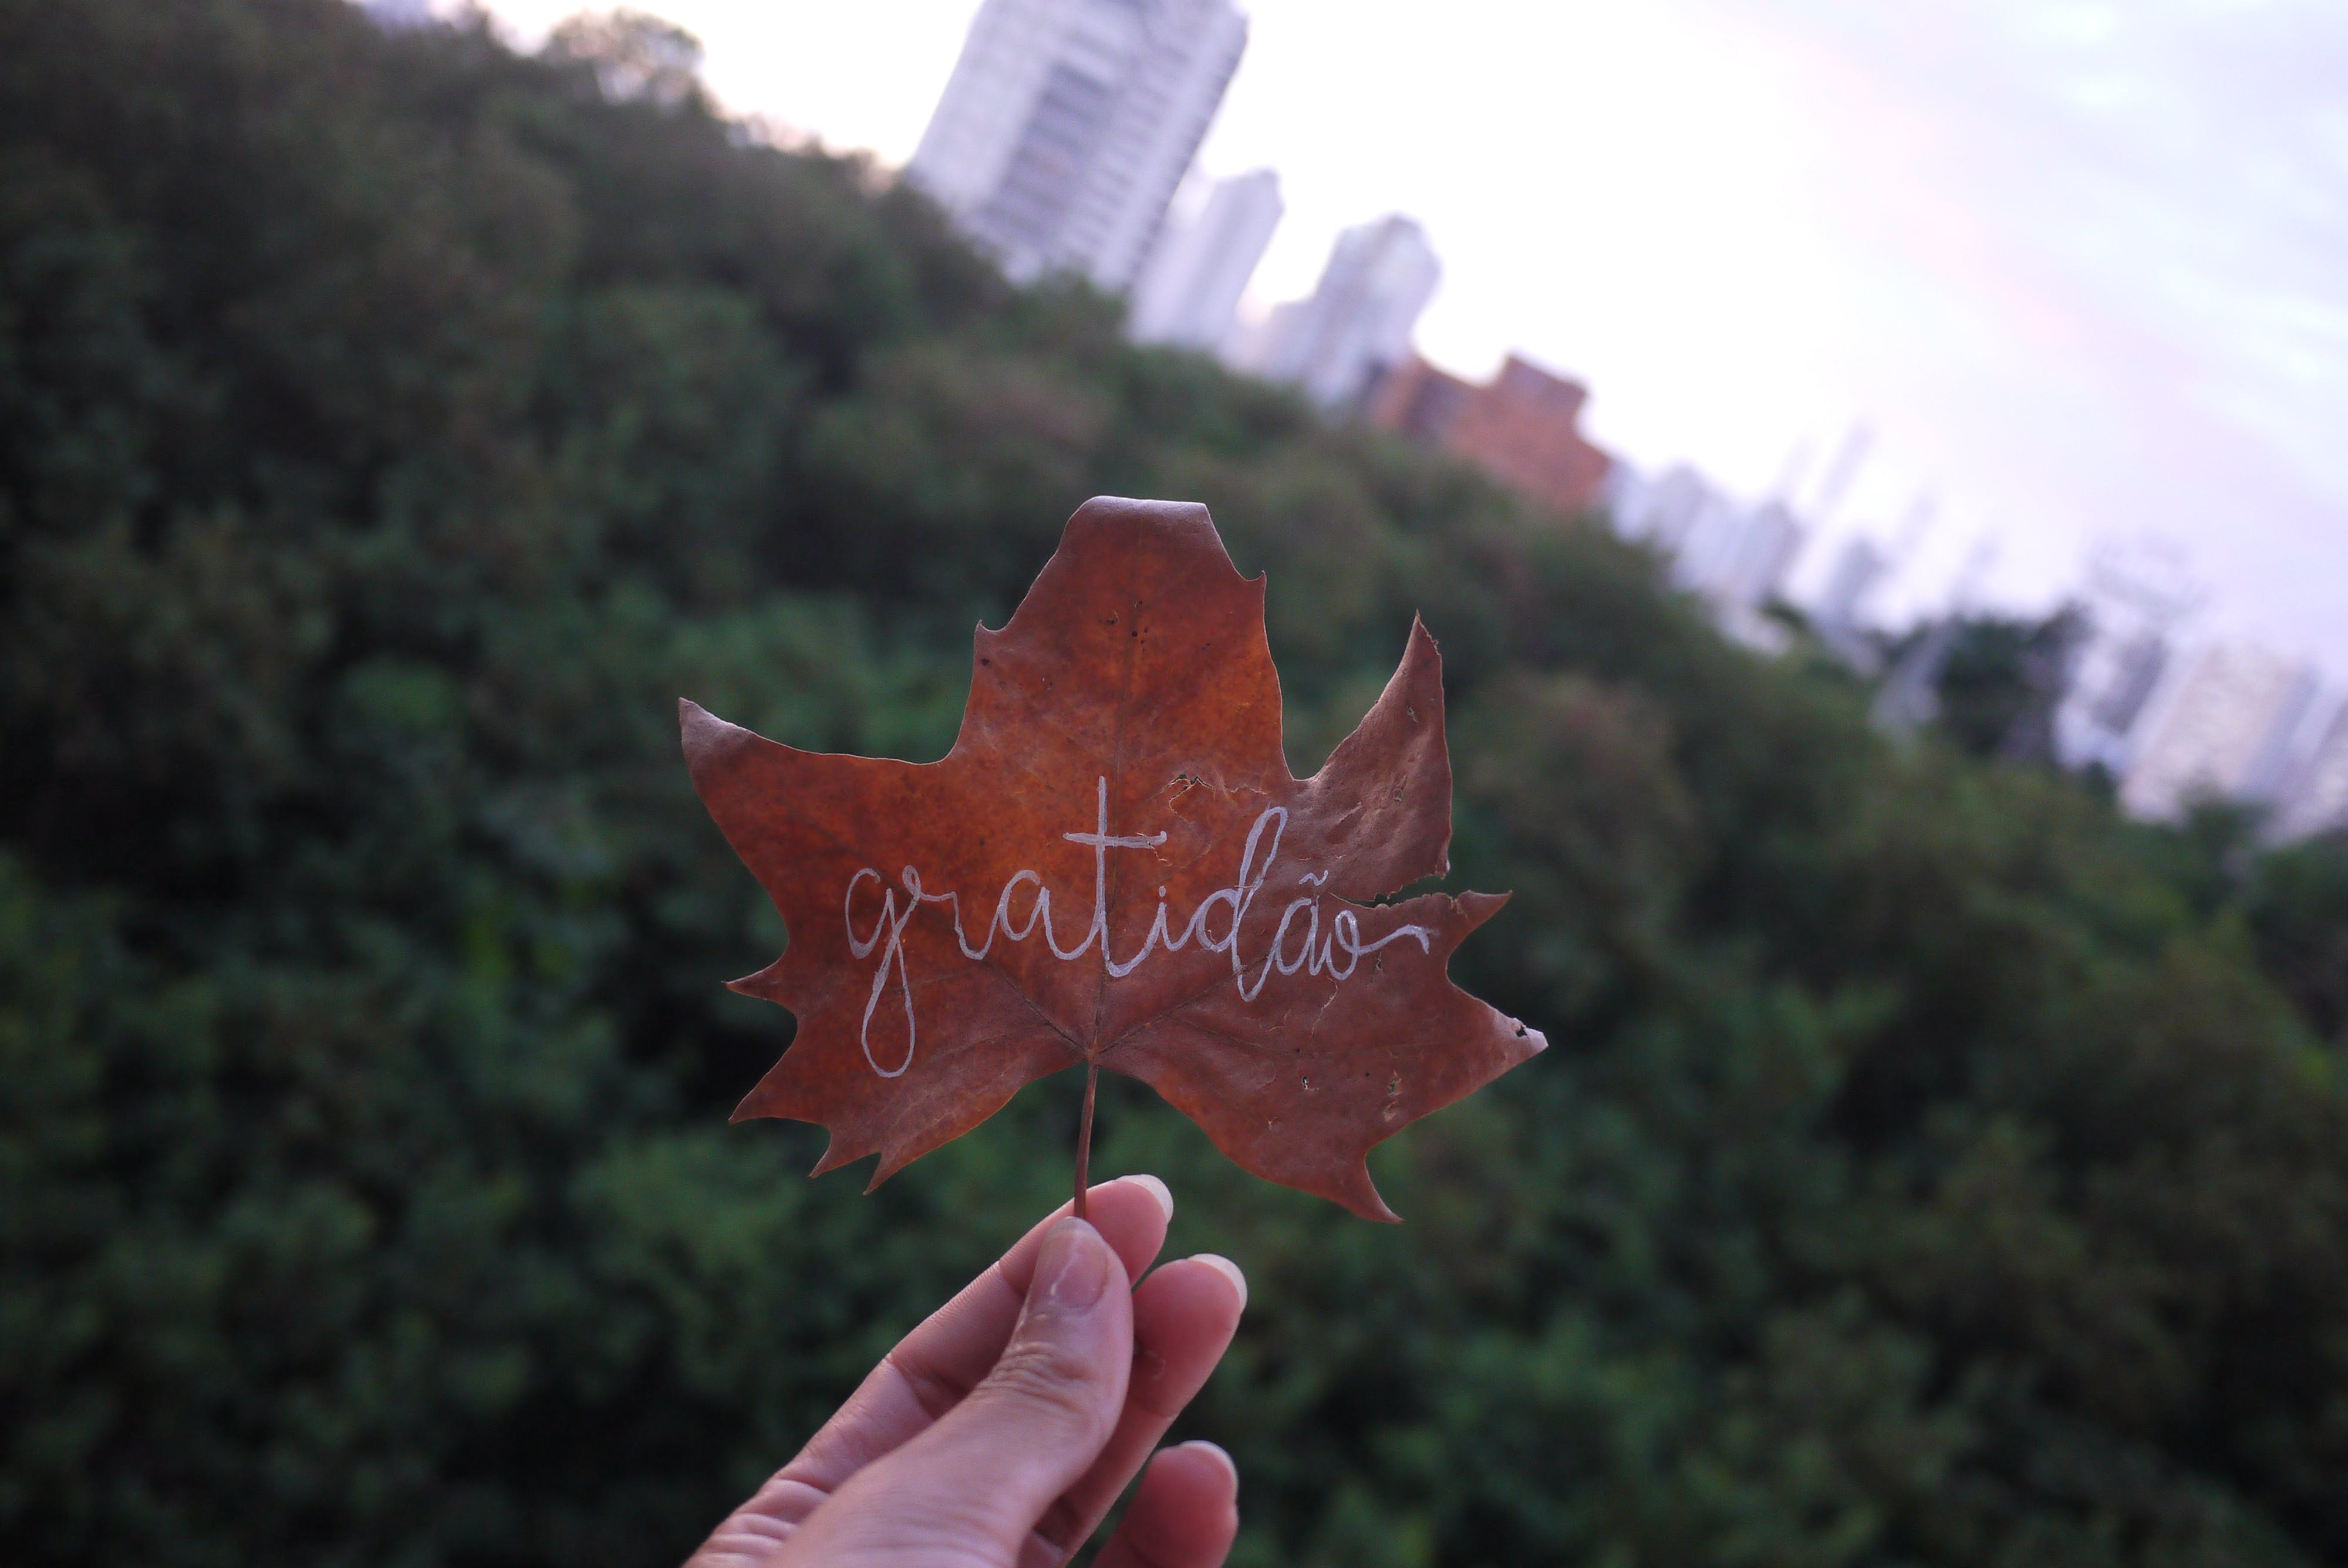 Free stock photo of hand, hand lettering, leaf, nature